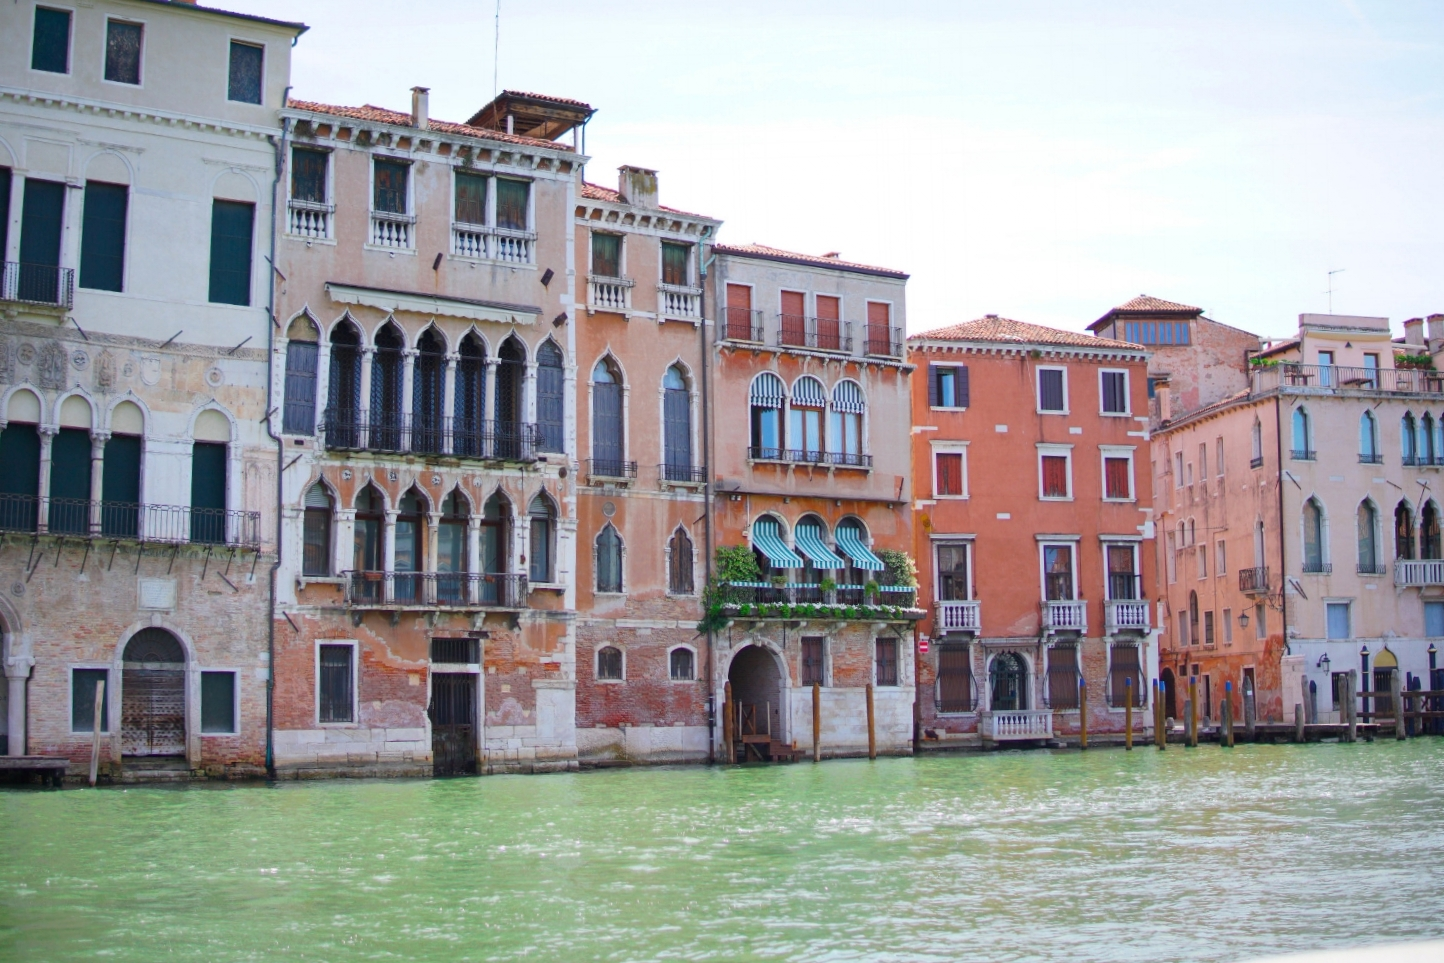 VENICE - A CITY ON WATER